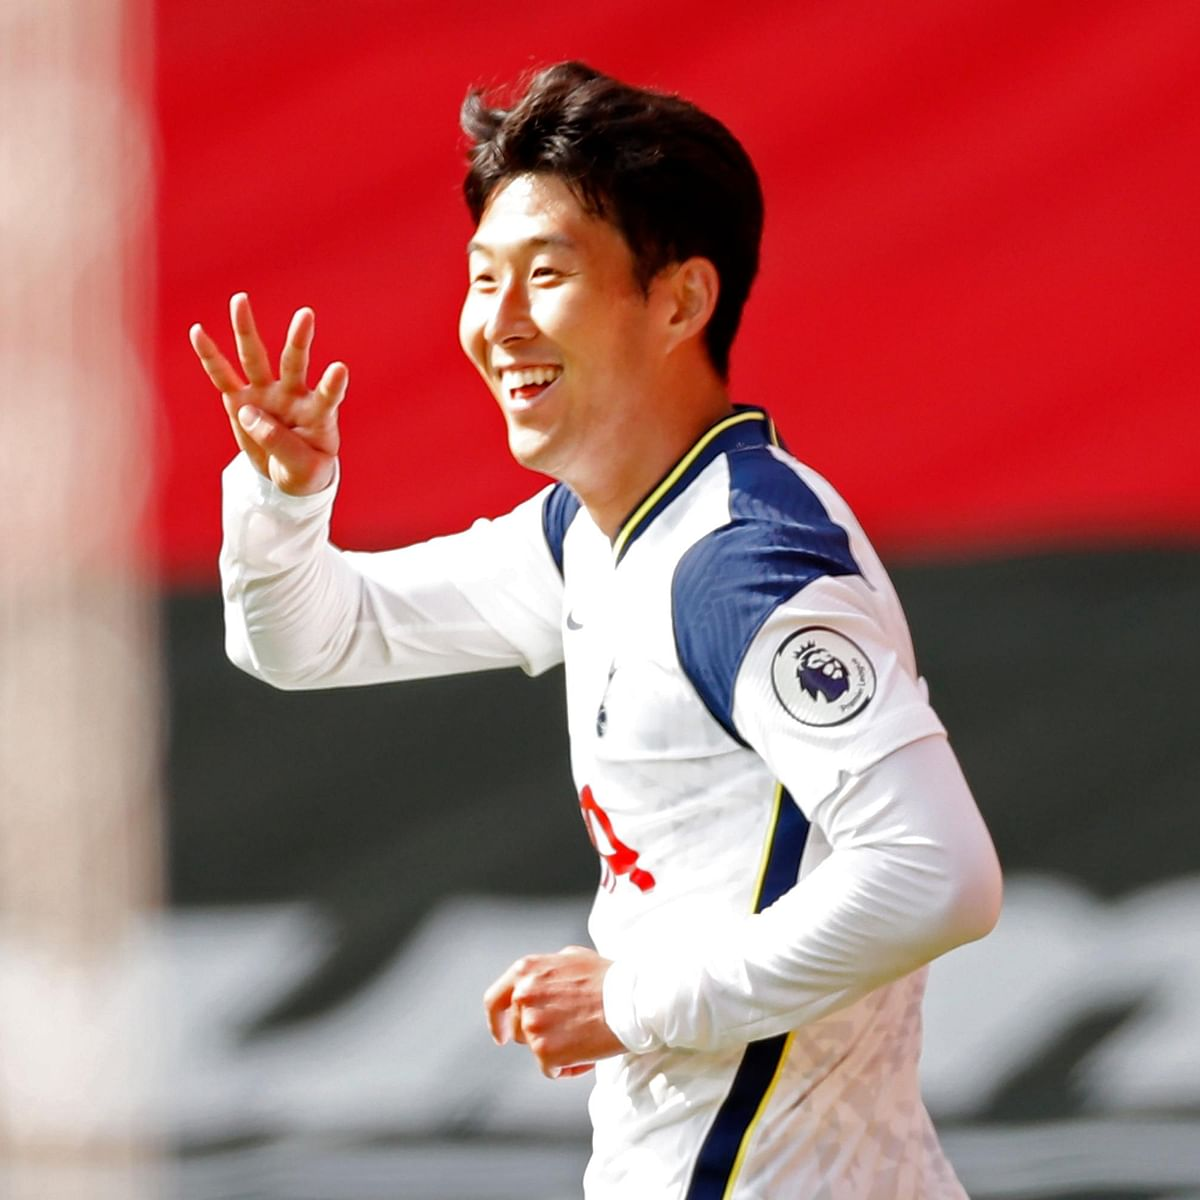 Premier League: Son Heung-min strikes four goals as Tottenham Hotspur thrash Southampton